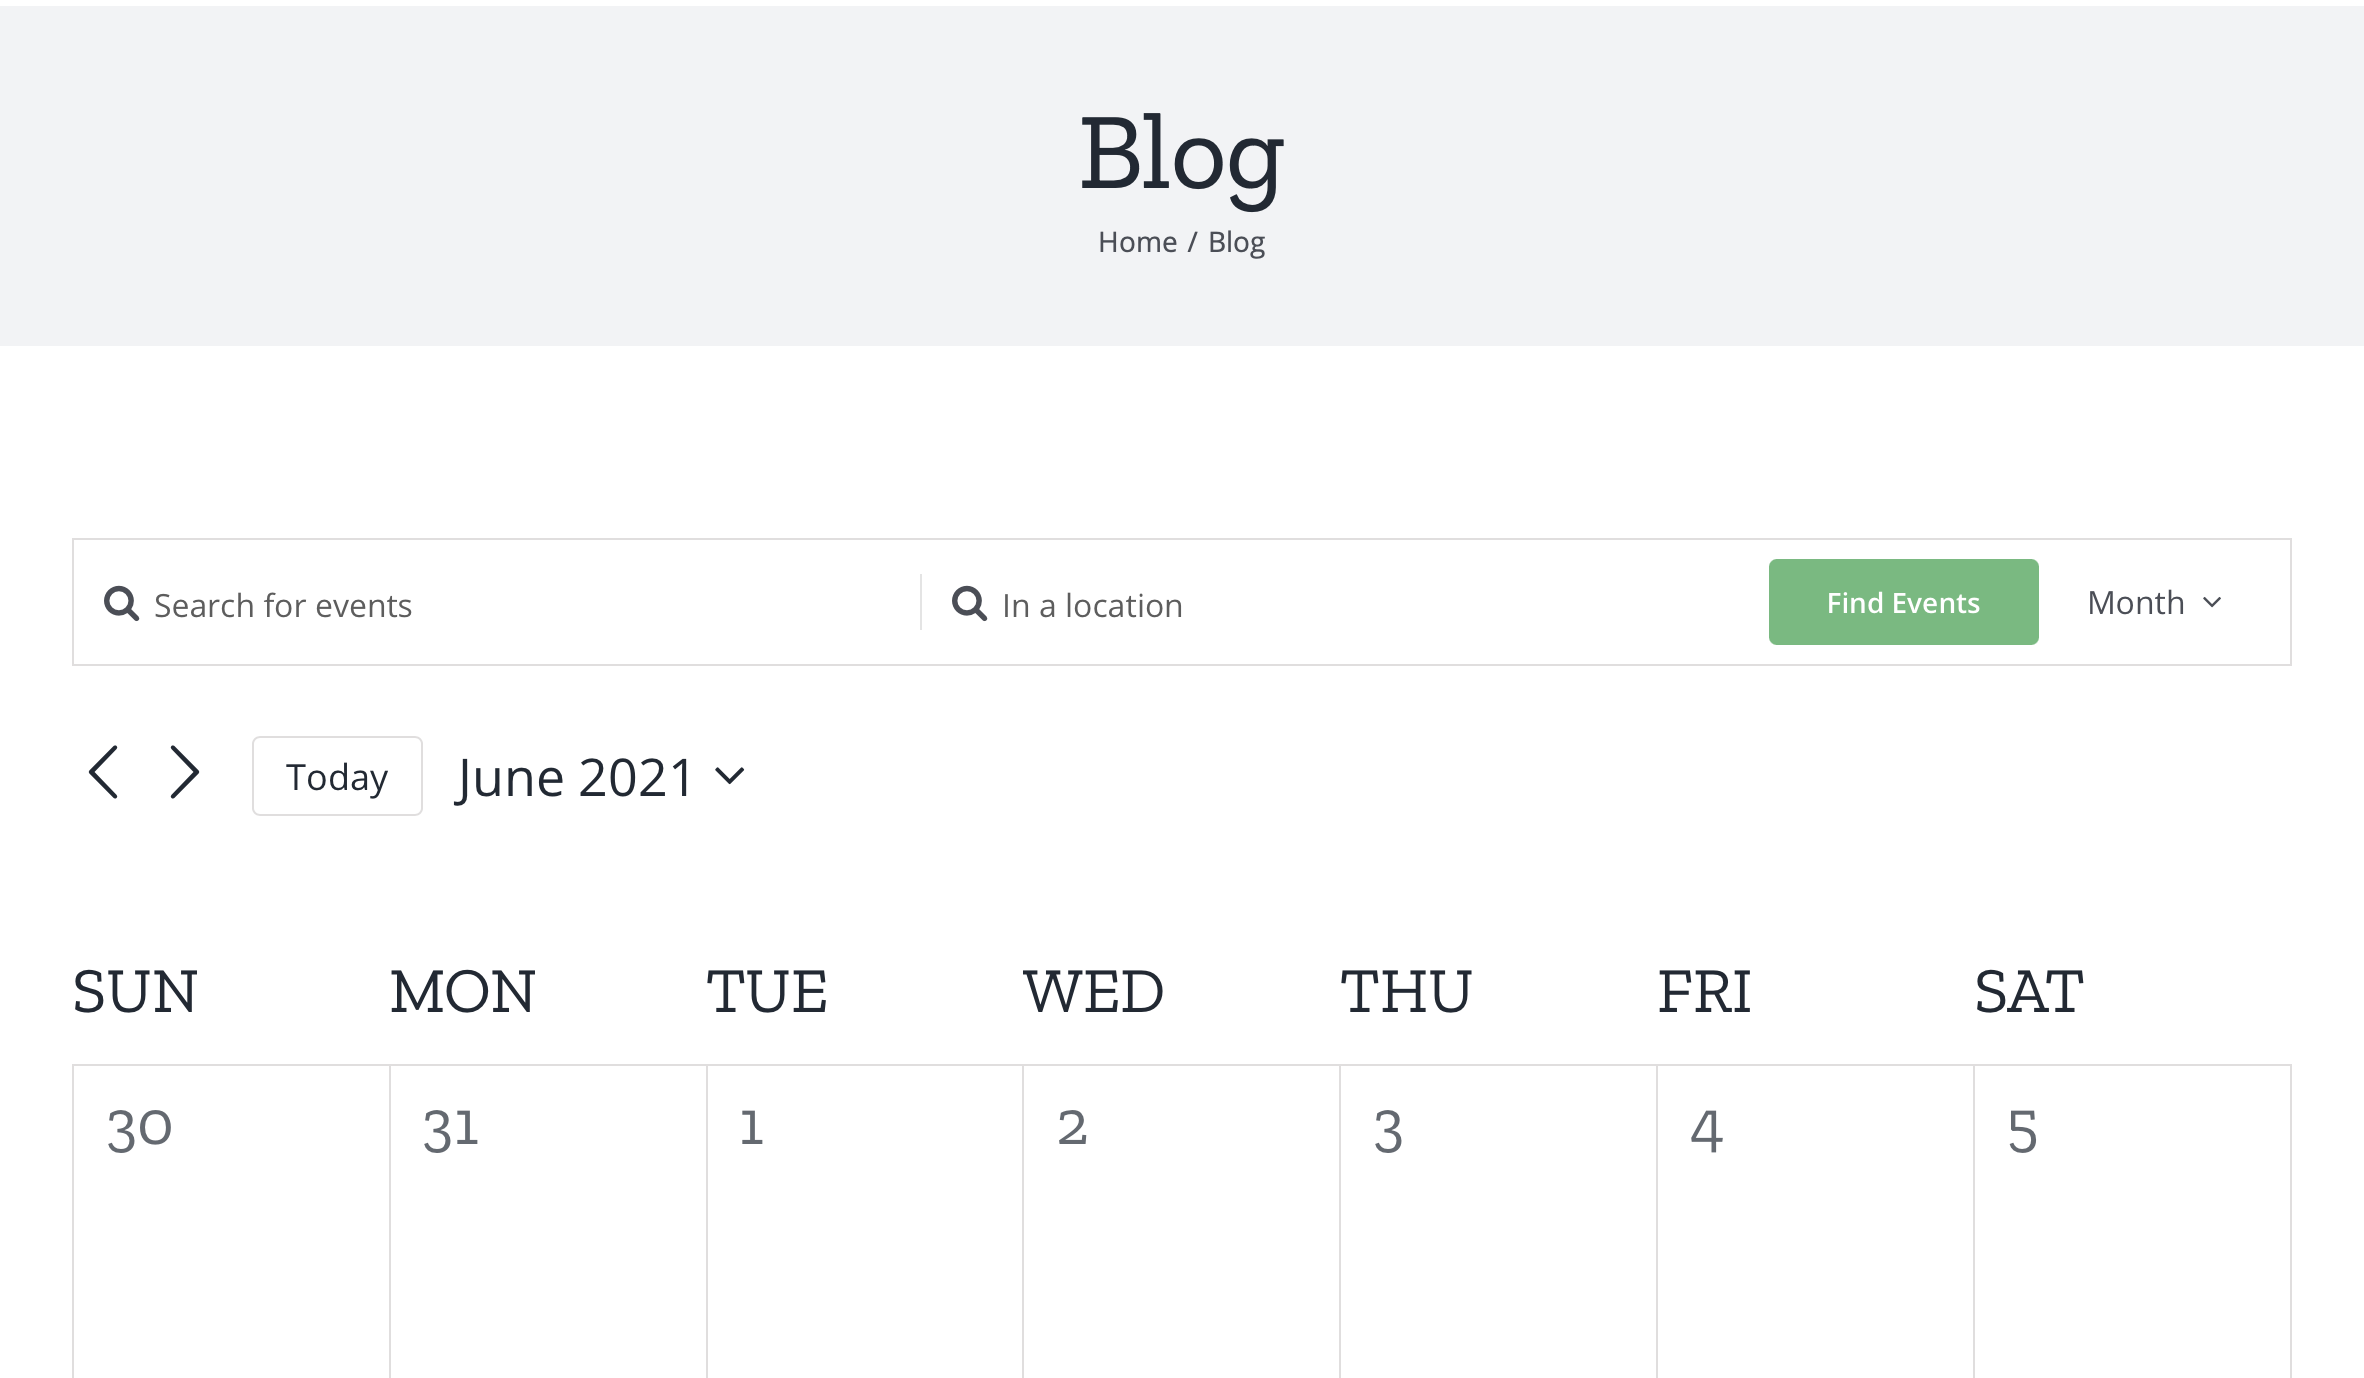 Showing the calendar month view with a light gray header that says Blog as the page title in a large font followed by breadcrumbs that display links to the site's Home and Blog.